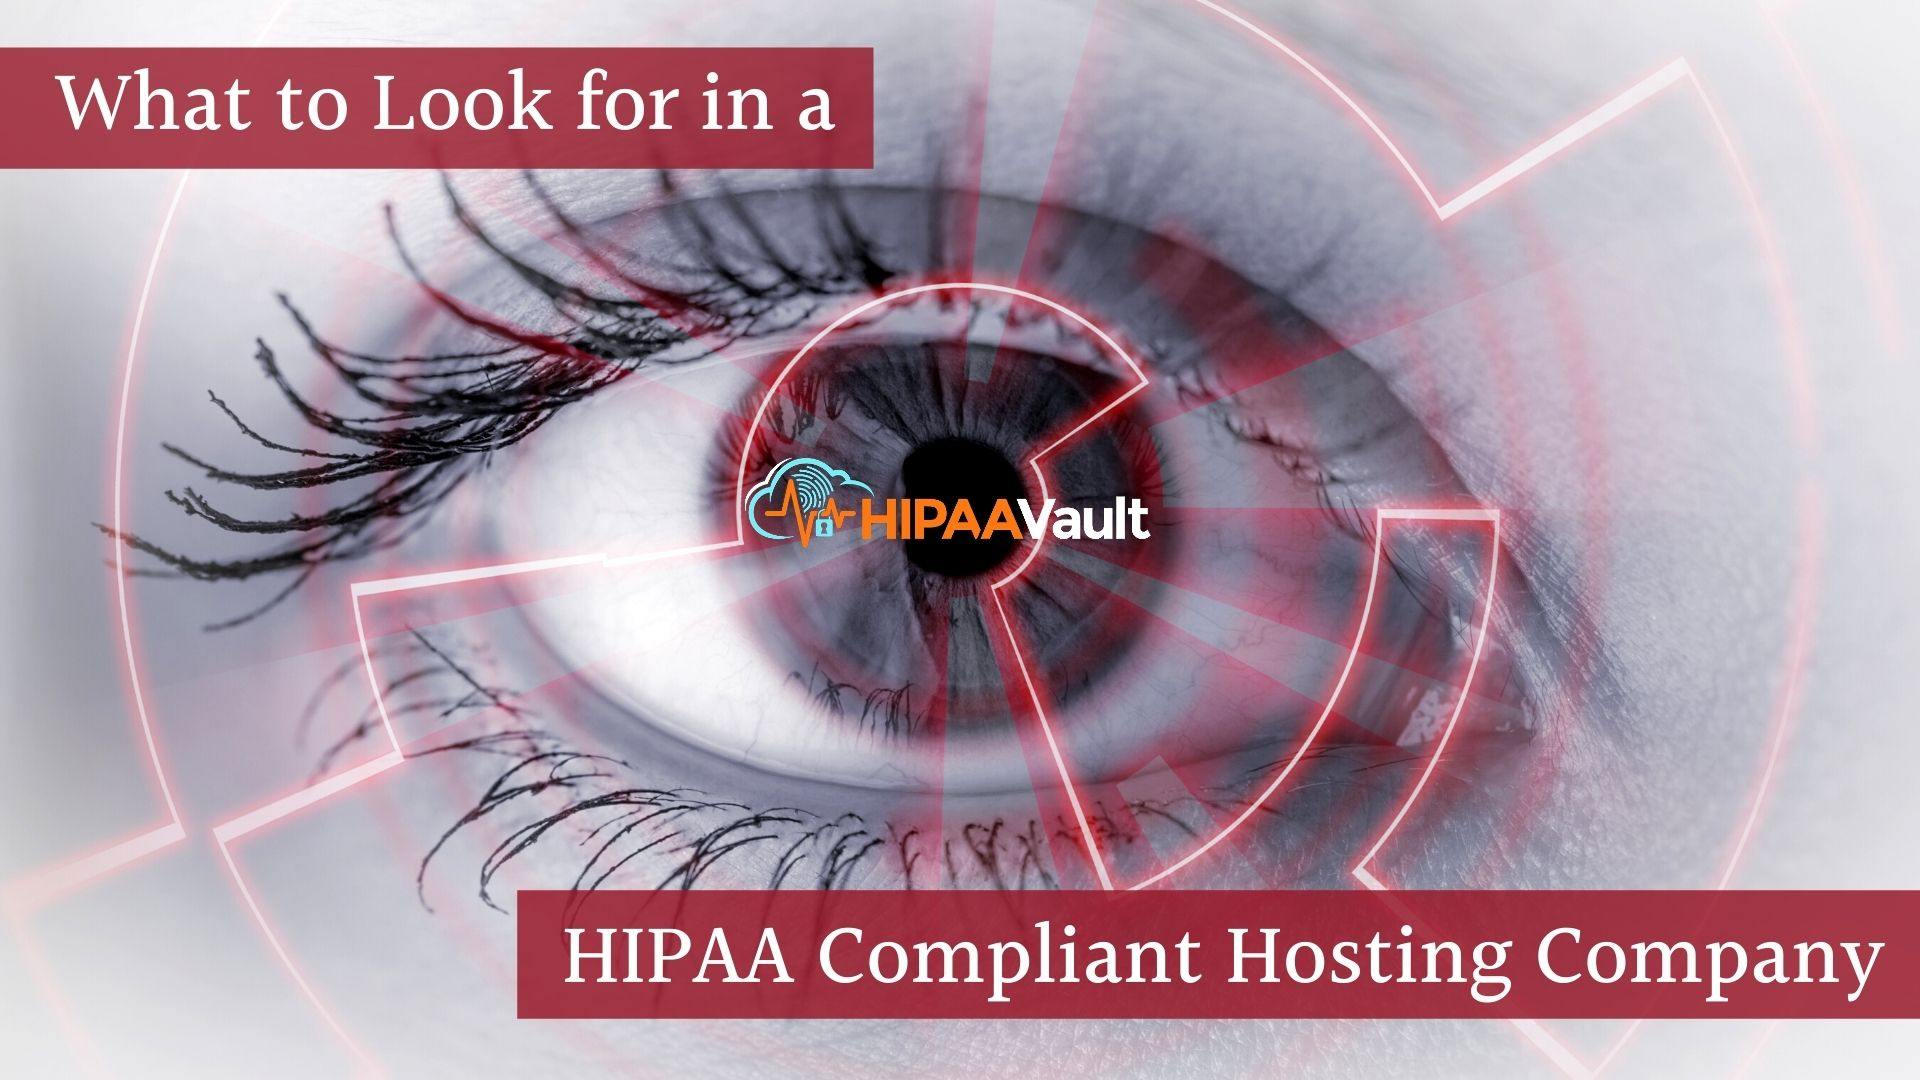 Ten Essentials to Look for in a HIPAA Compliant Hosting Company